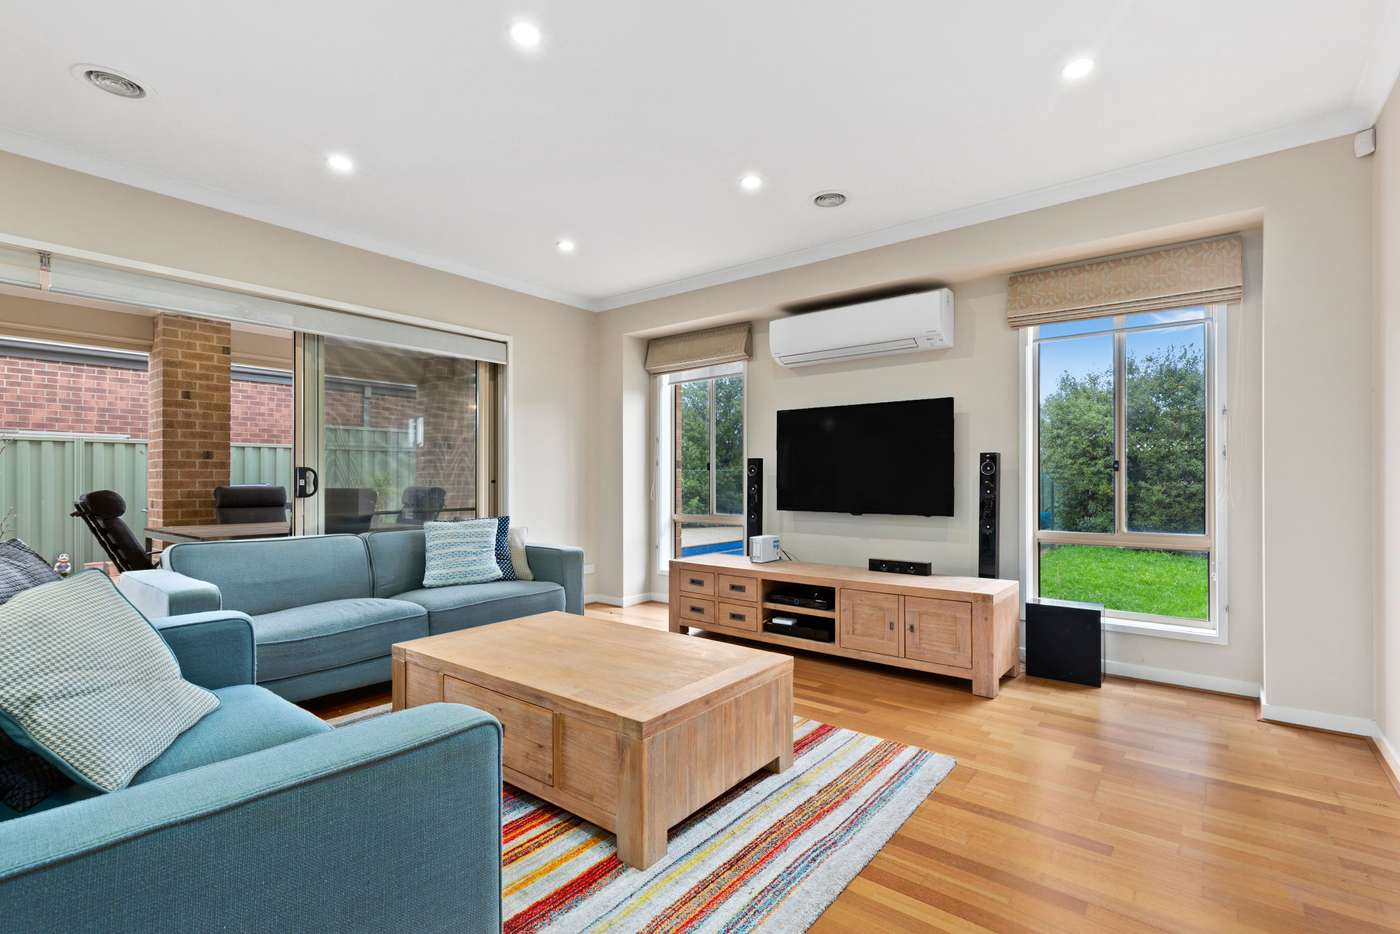 Sixth view of Homely house listing, 8 Avon River Way, Pakenham VIC 3810